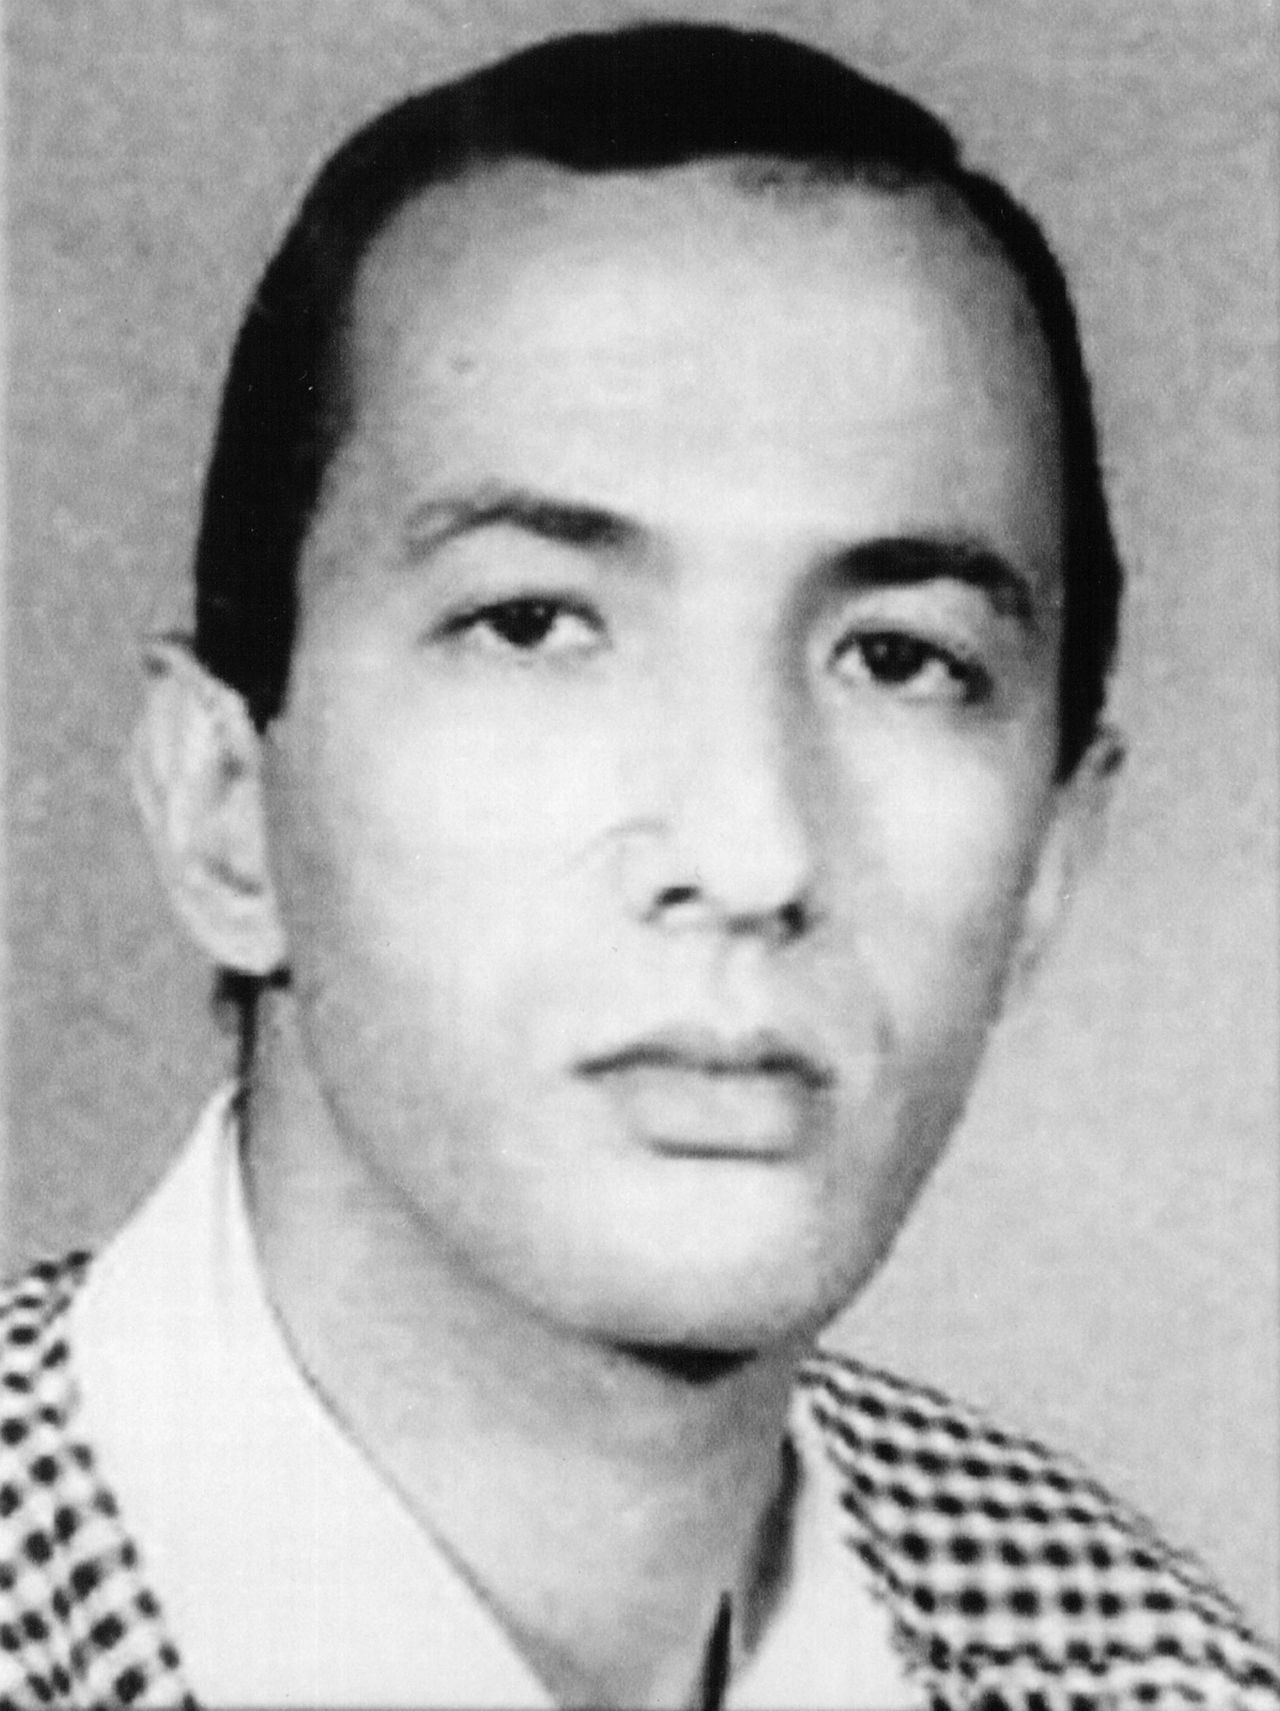 395630 08: Saif Al-Adel, a suspected terrorist wanted in connection with the 1998 bombings of the United States Embassies Tanzania and Kenya, is shown in a photo released by the FBI October 10, 2001 in Washington, DC. President George W. Bush attended an event to announce the FBI's most wanted terrorists, during a visit to the Bureau. (Photo Courtesy of FBI/Getty Images)